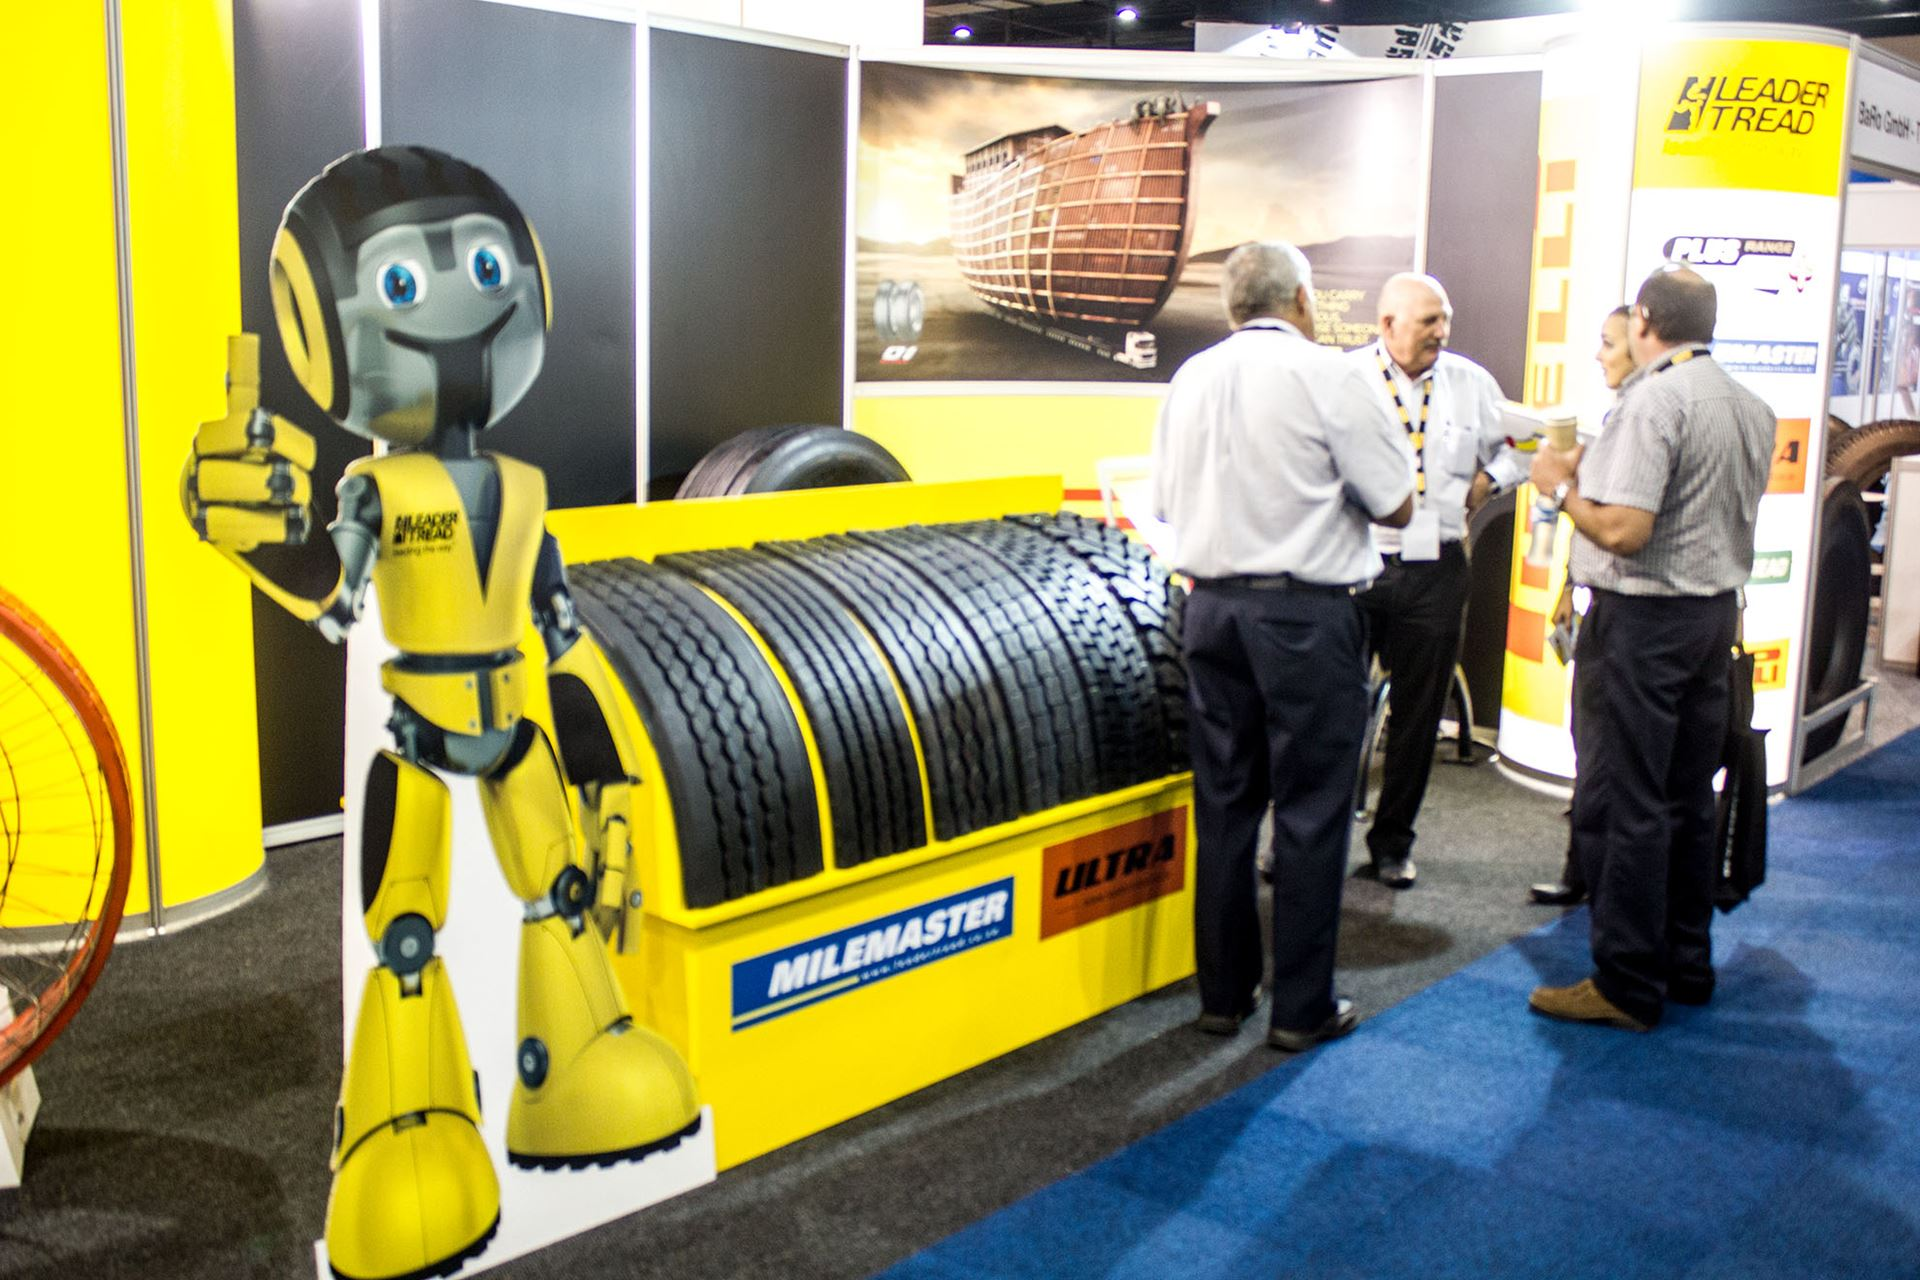 Tyre-Expo-South-Africa-2014-Leader-Tread-05